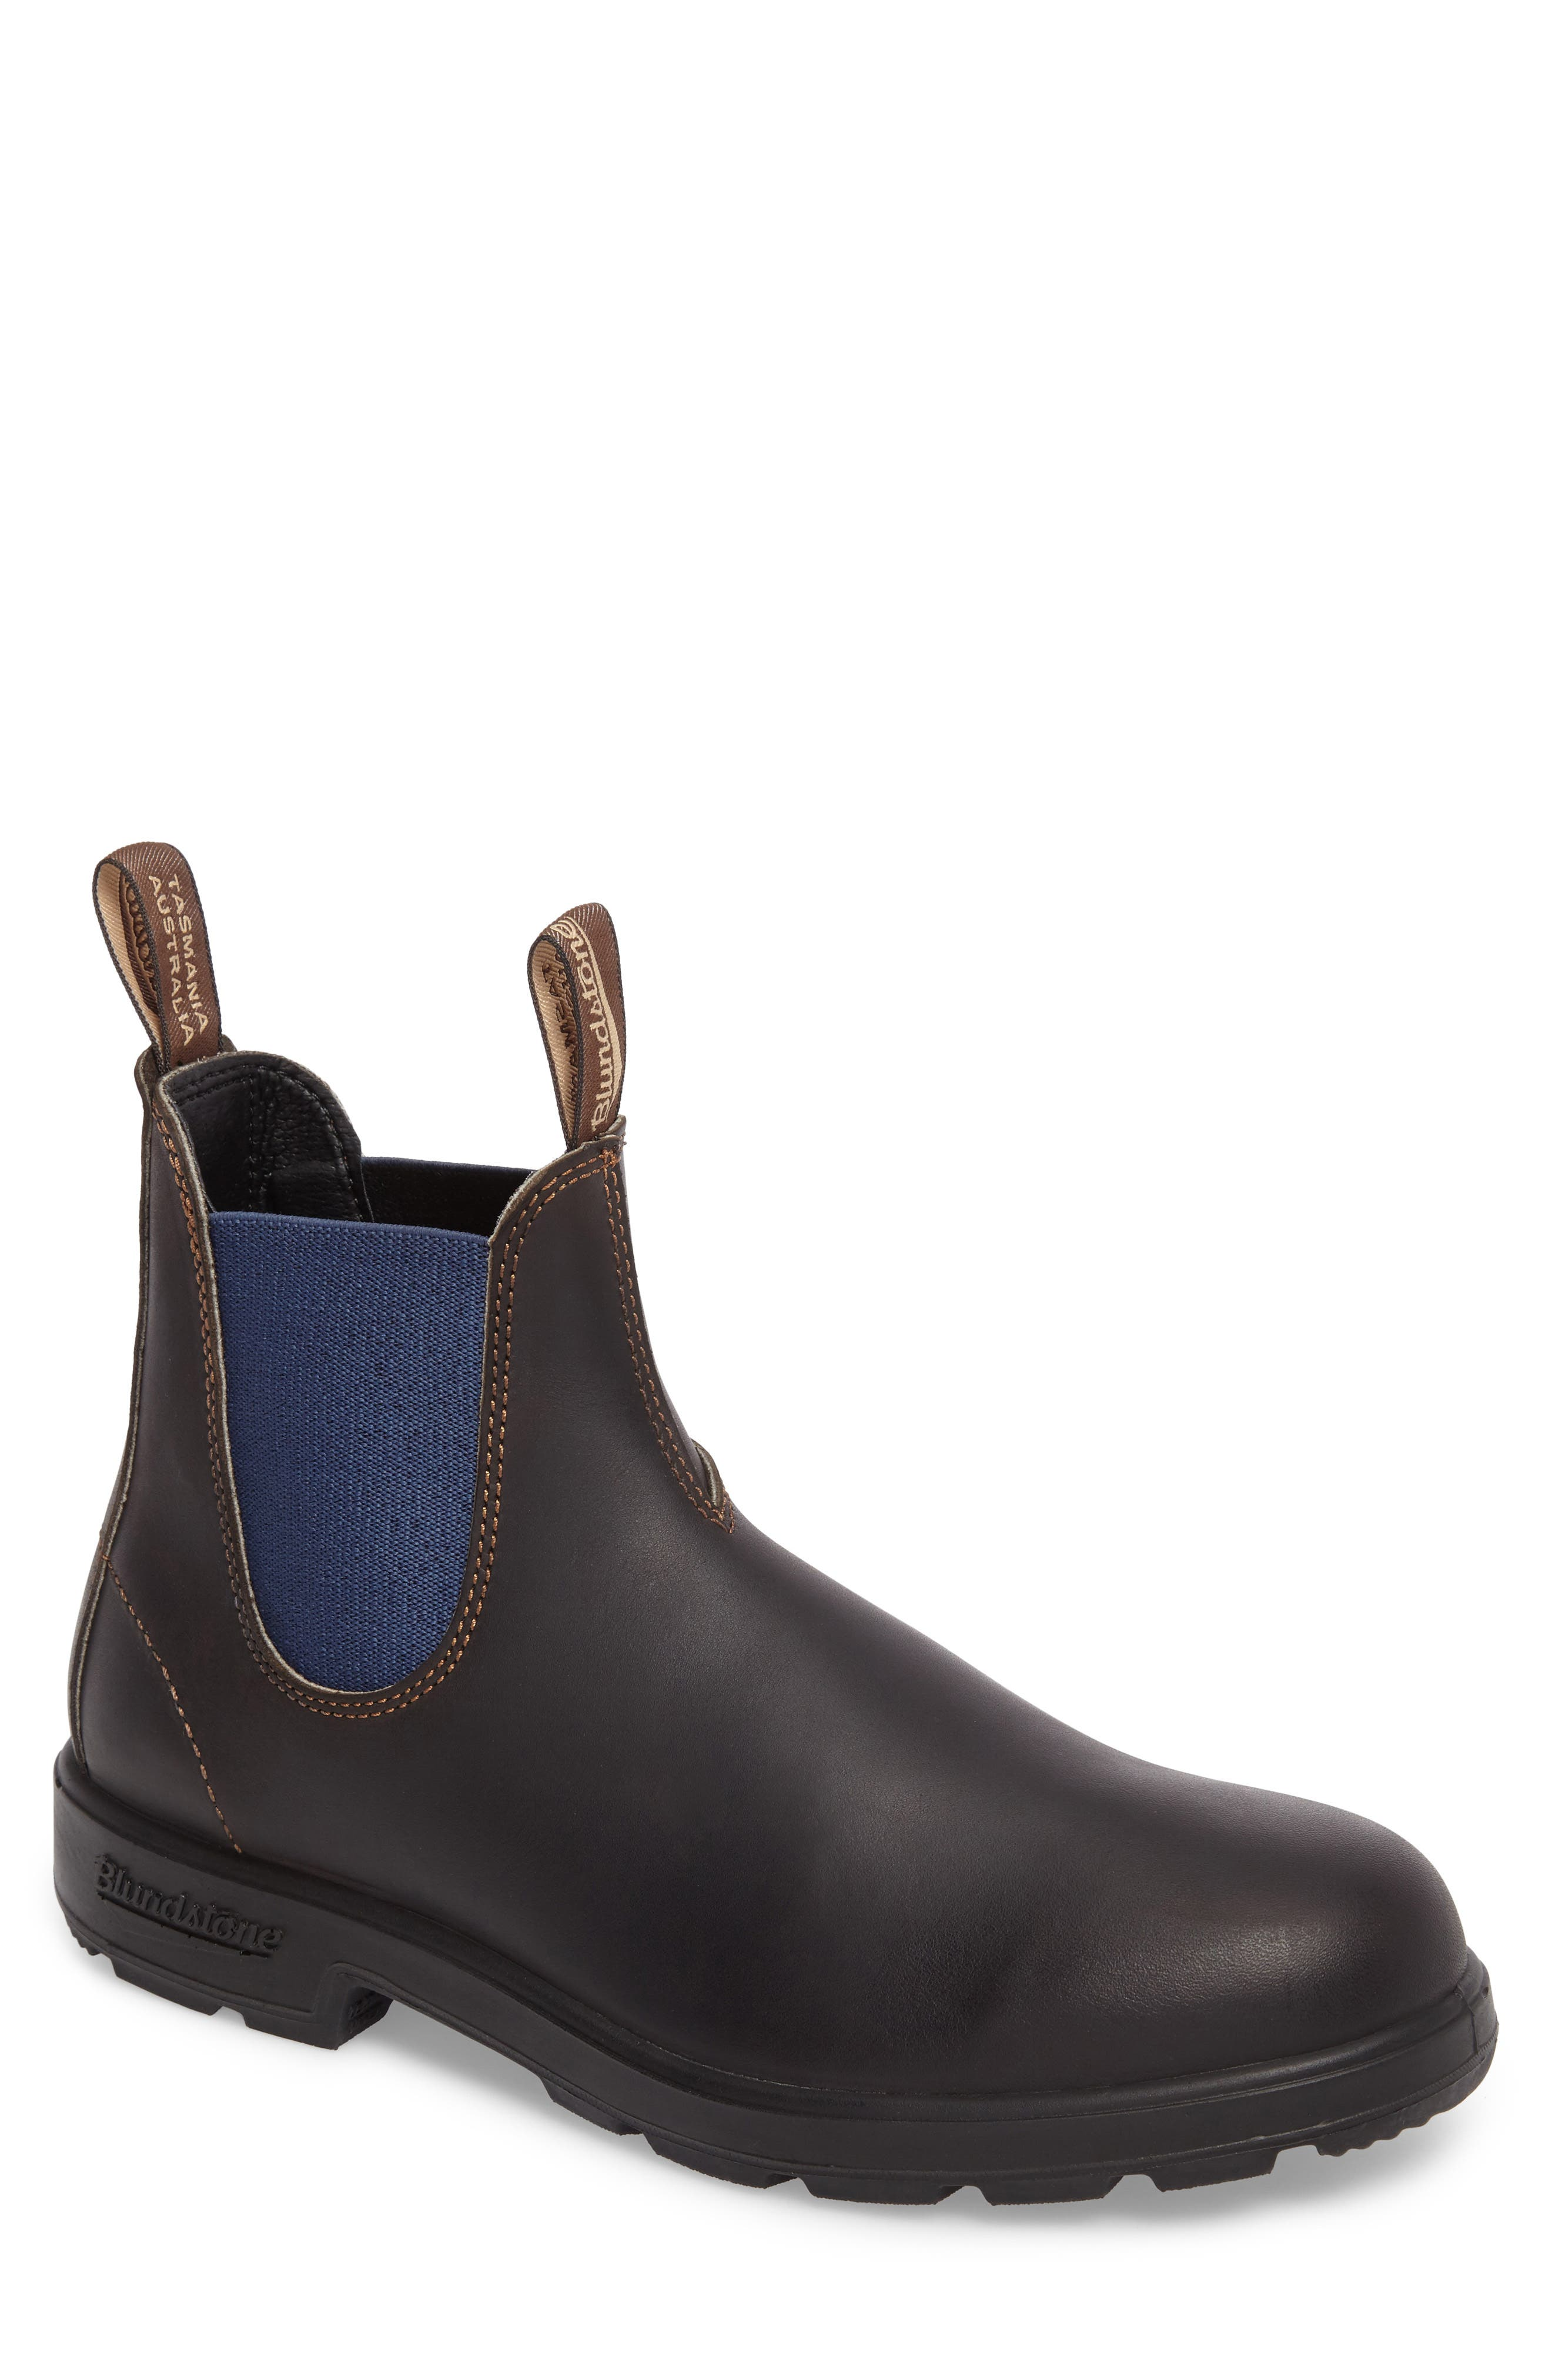 Chelsea Boot,                             Main thumbnail 1, color,                             BROWN/ BLUE LEATHER